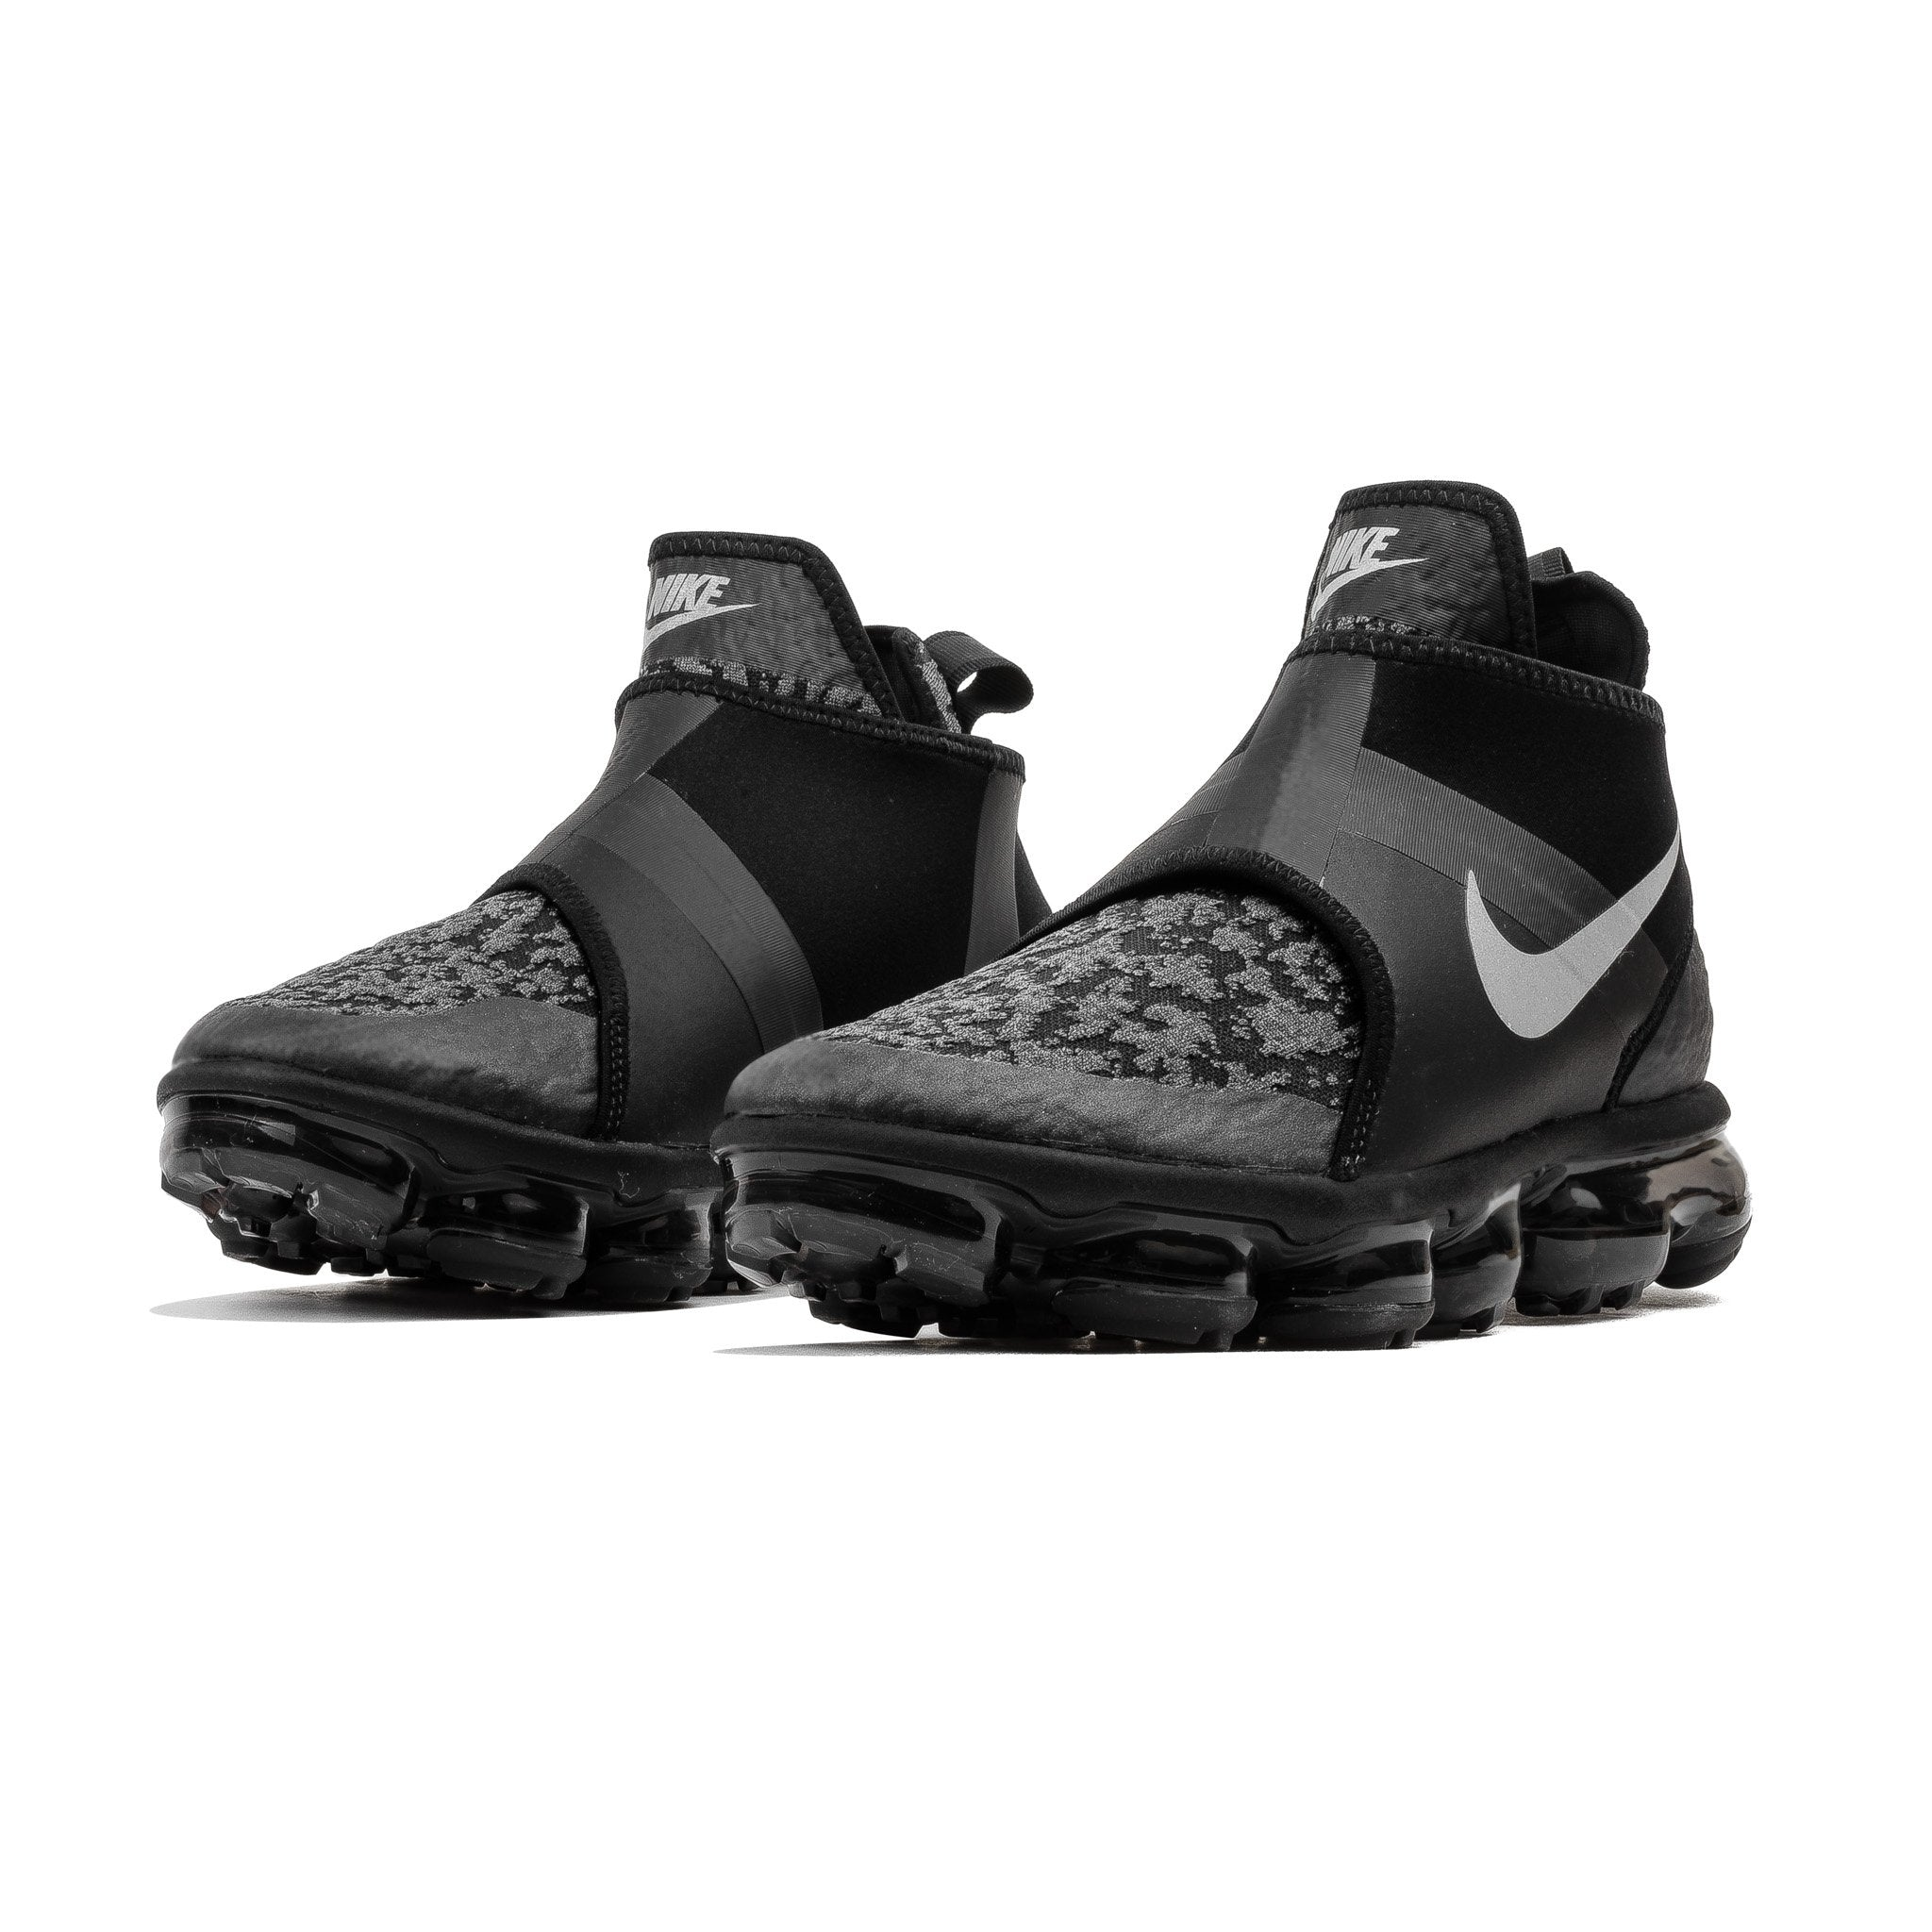 Air Vapormax Chukka Slip AO9326-002 Black